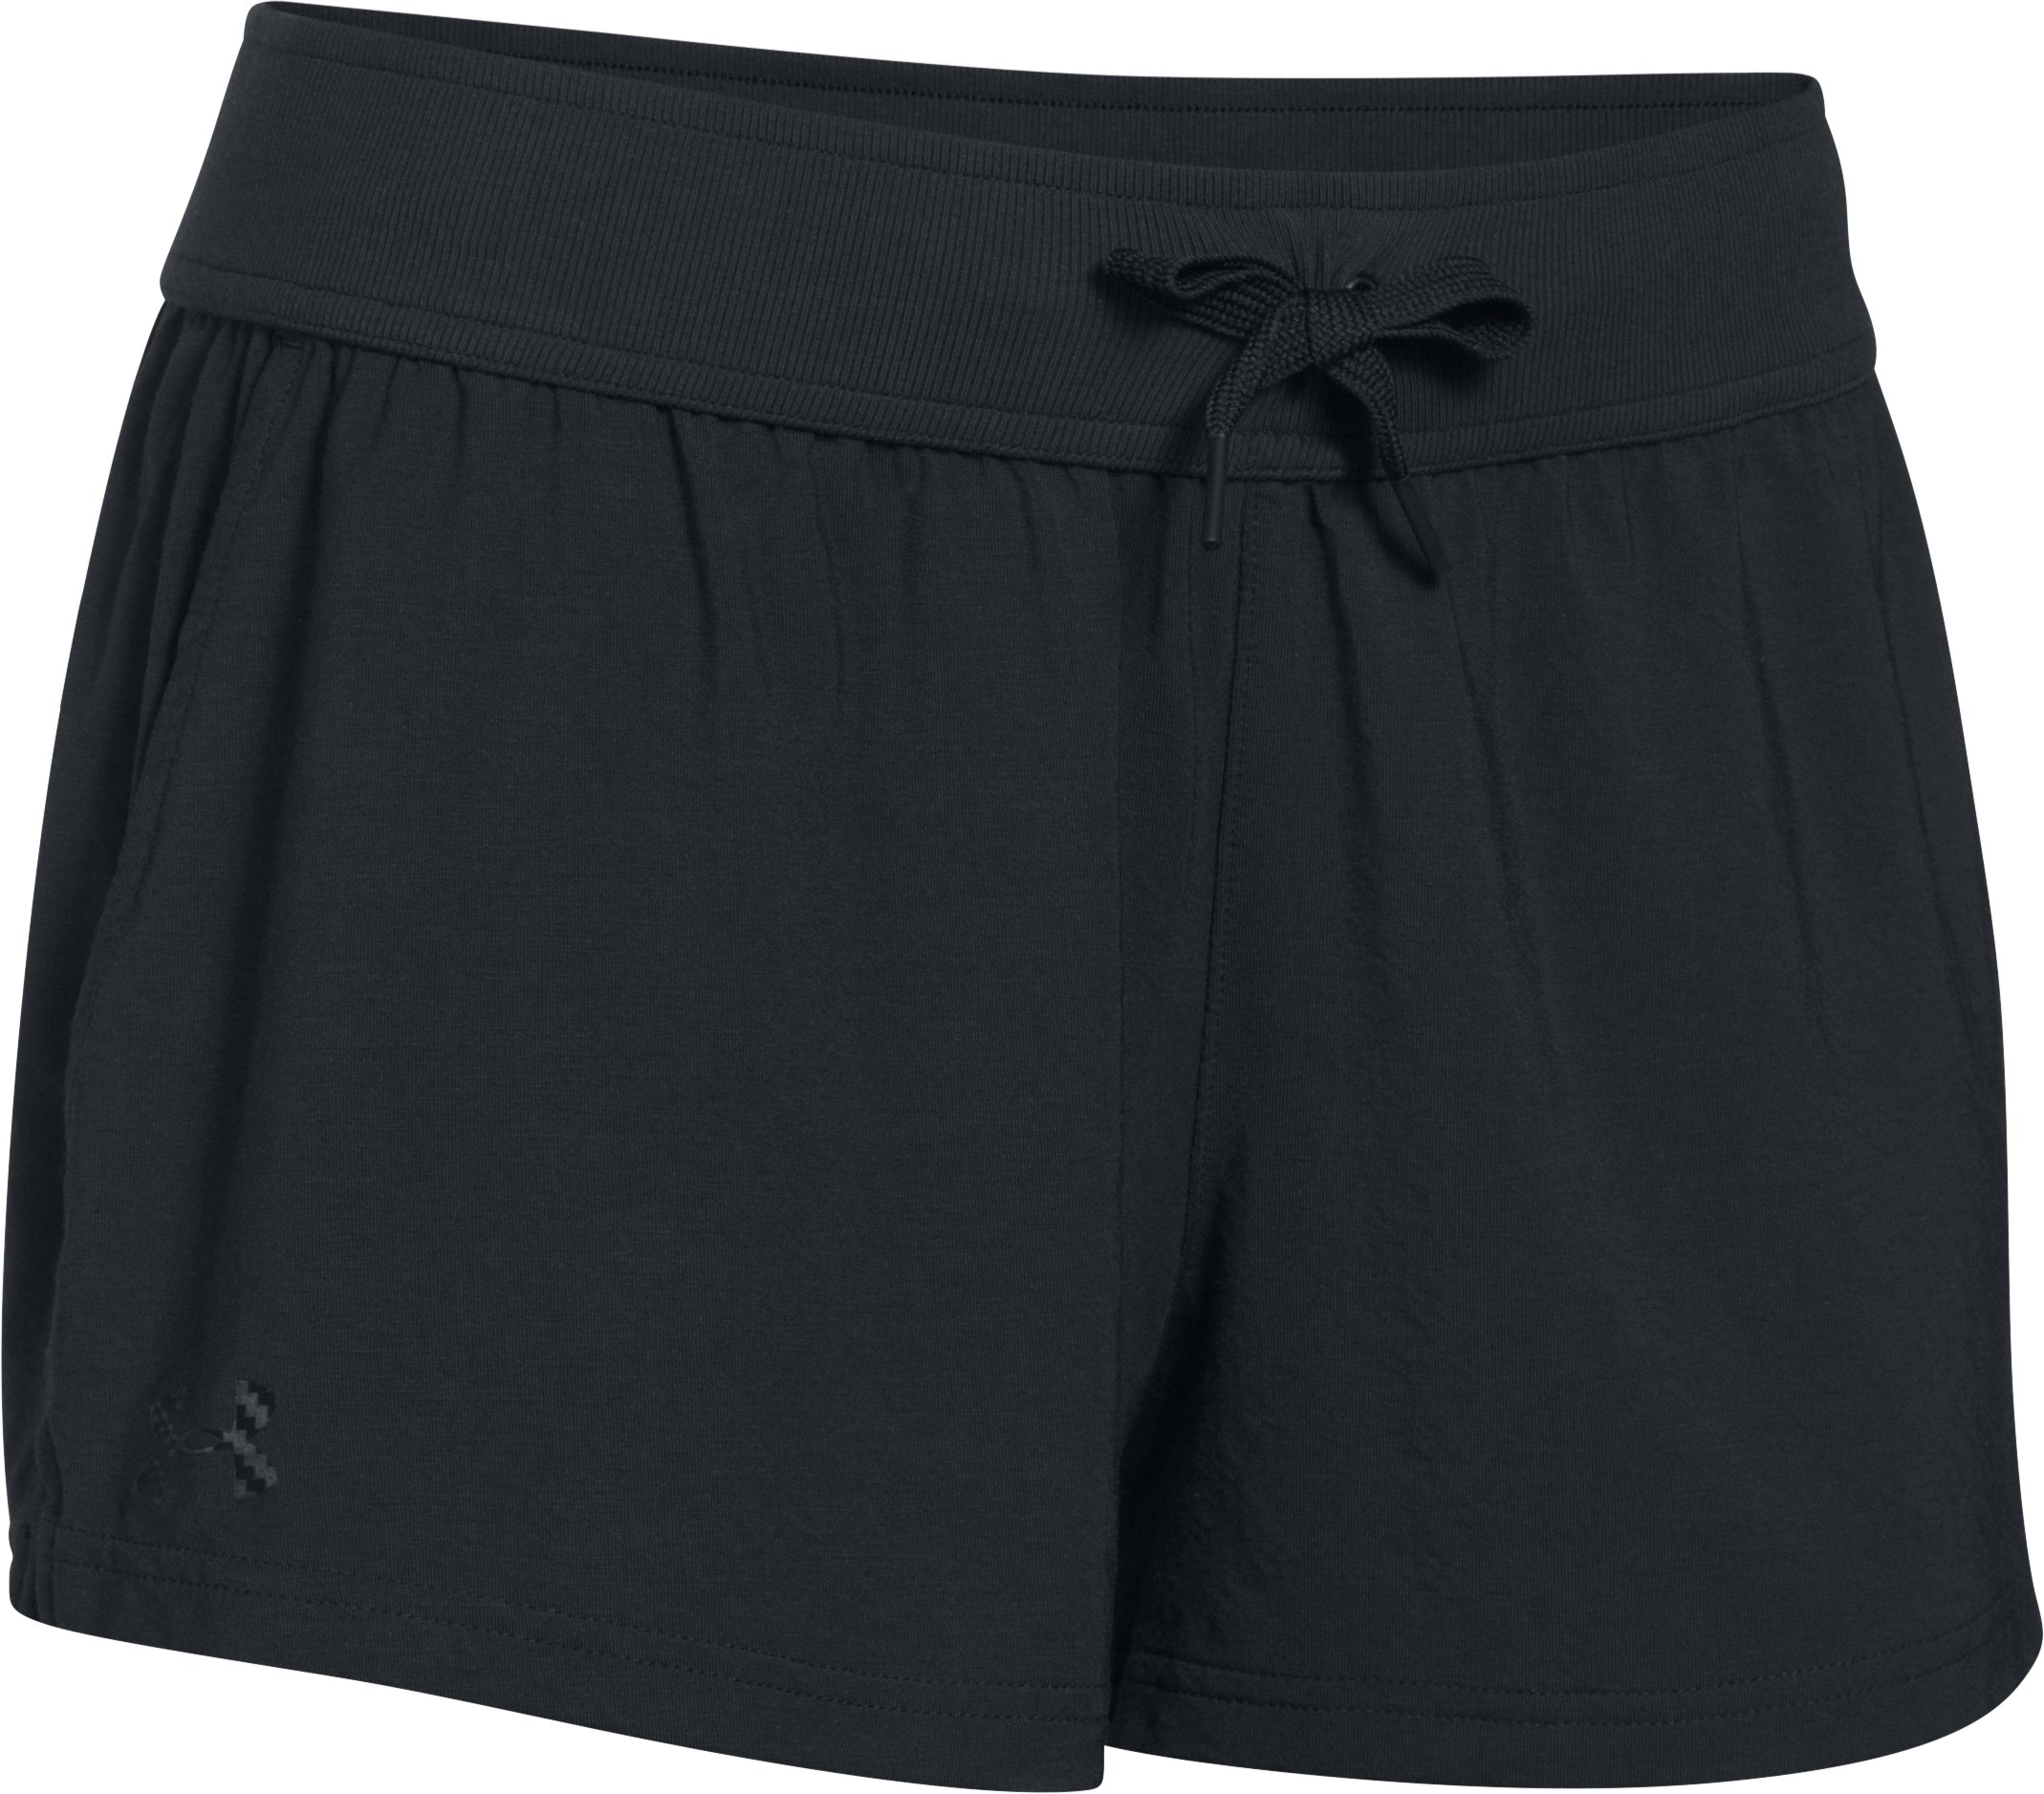 Women's Athlete Recovery Sleepwear Shorts, Black , undefined